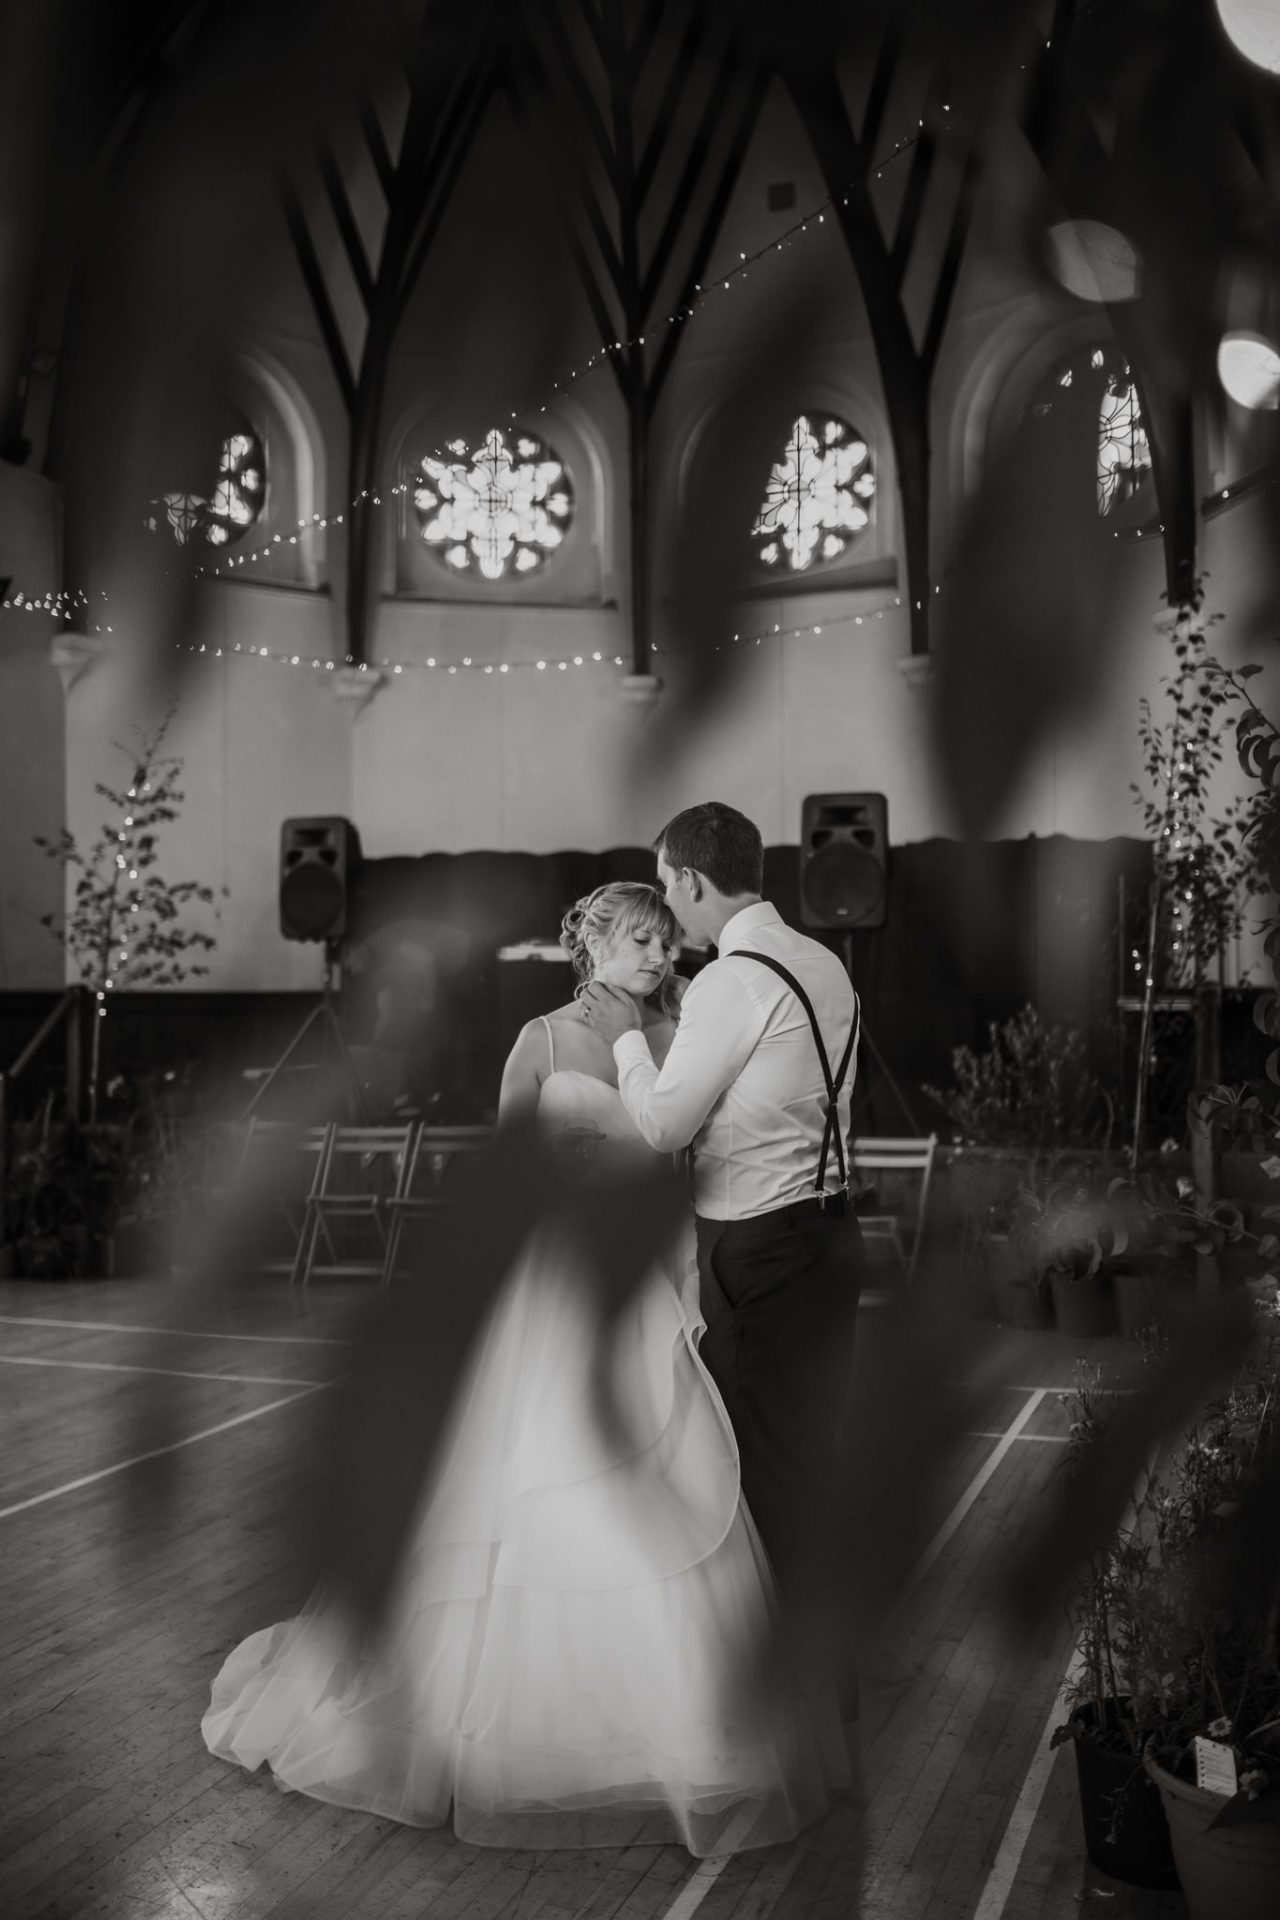 bride and groom having a private moment during wedding